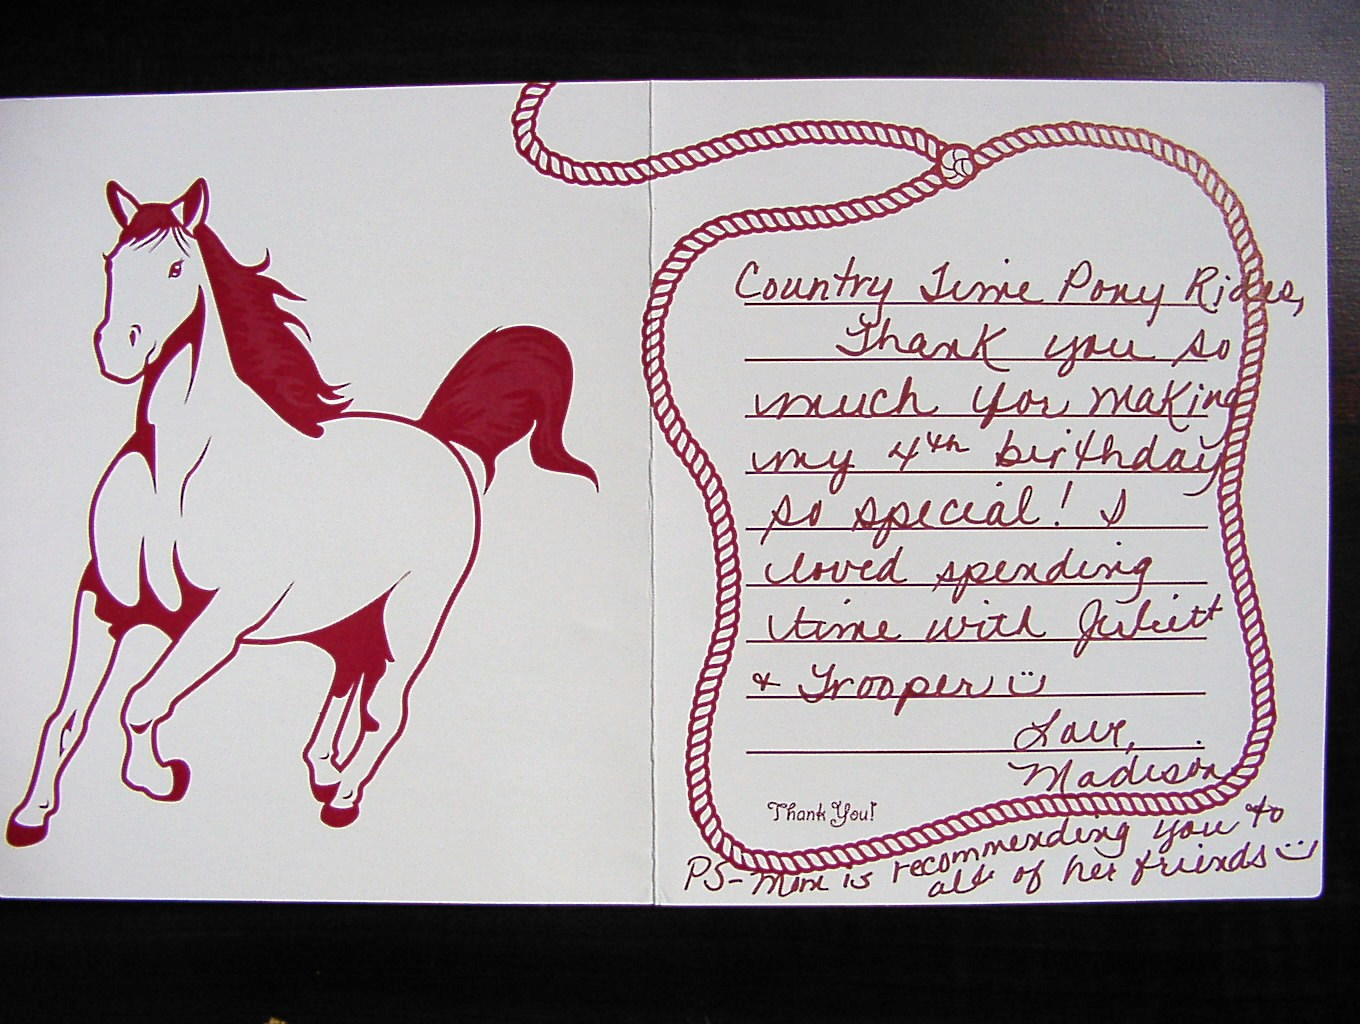 CountryTime Pony Rides - Customer Letter 4